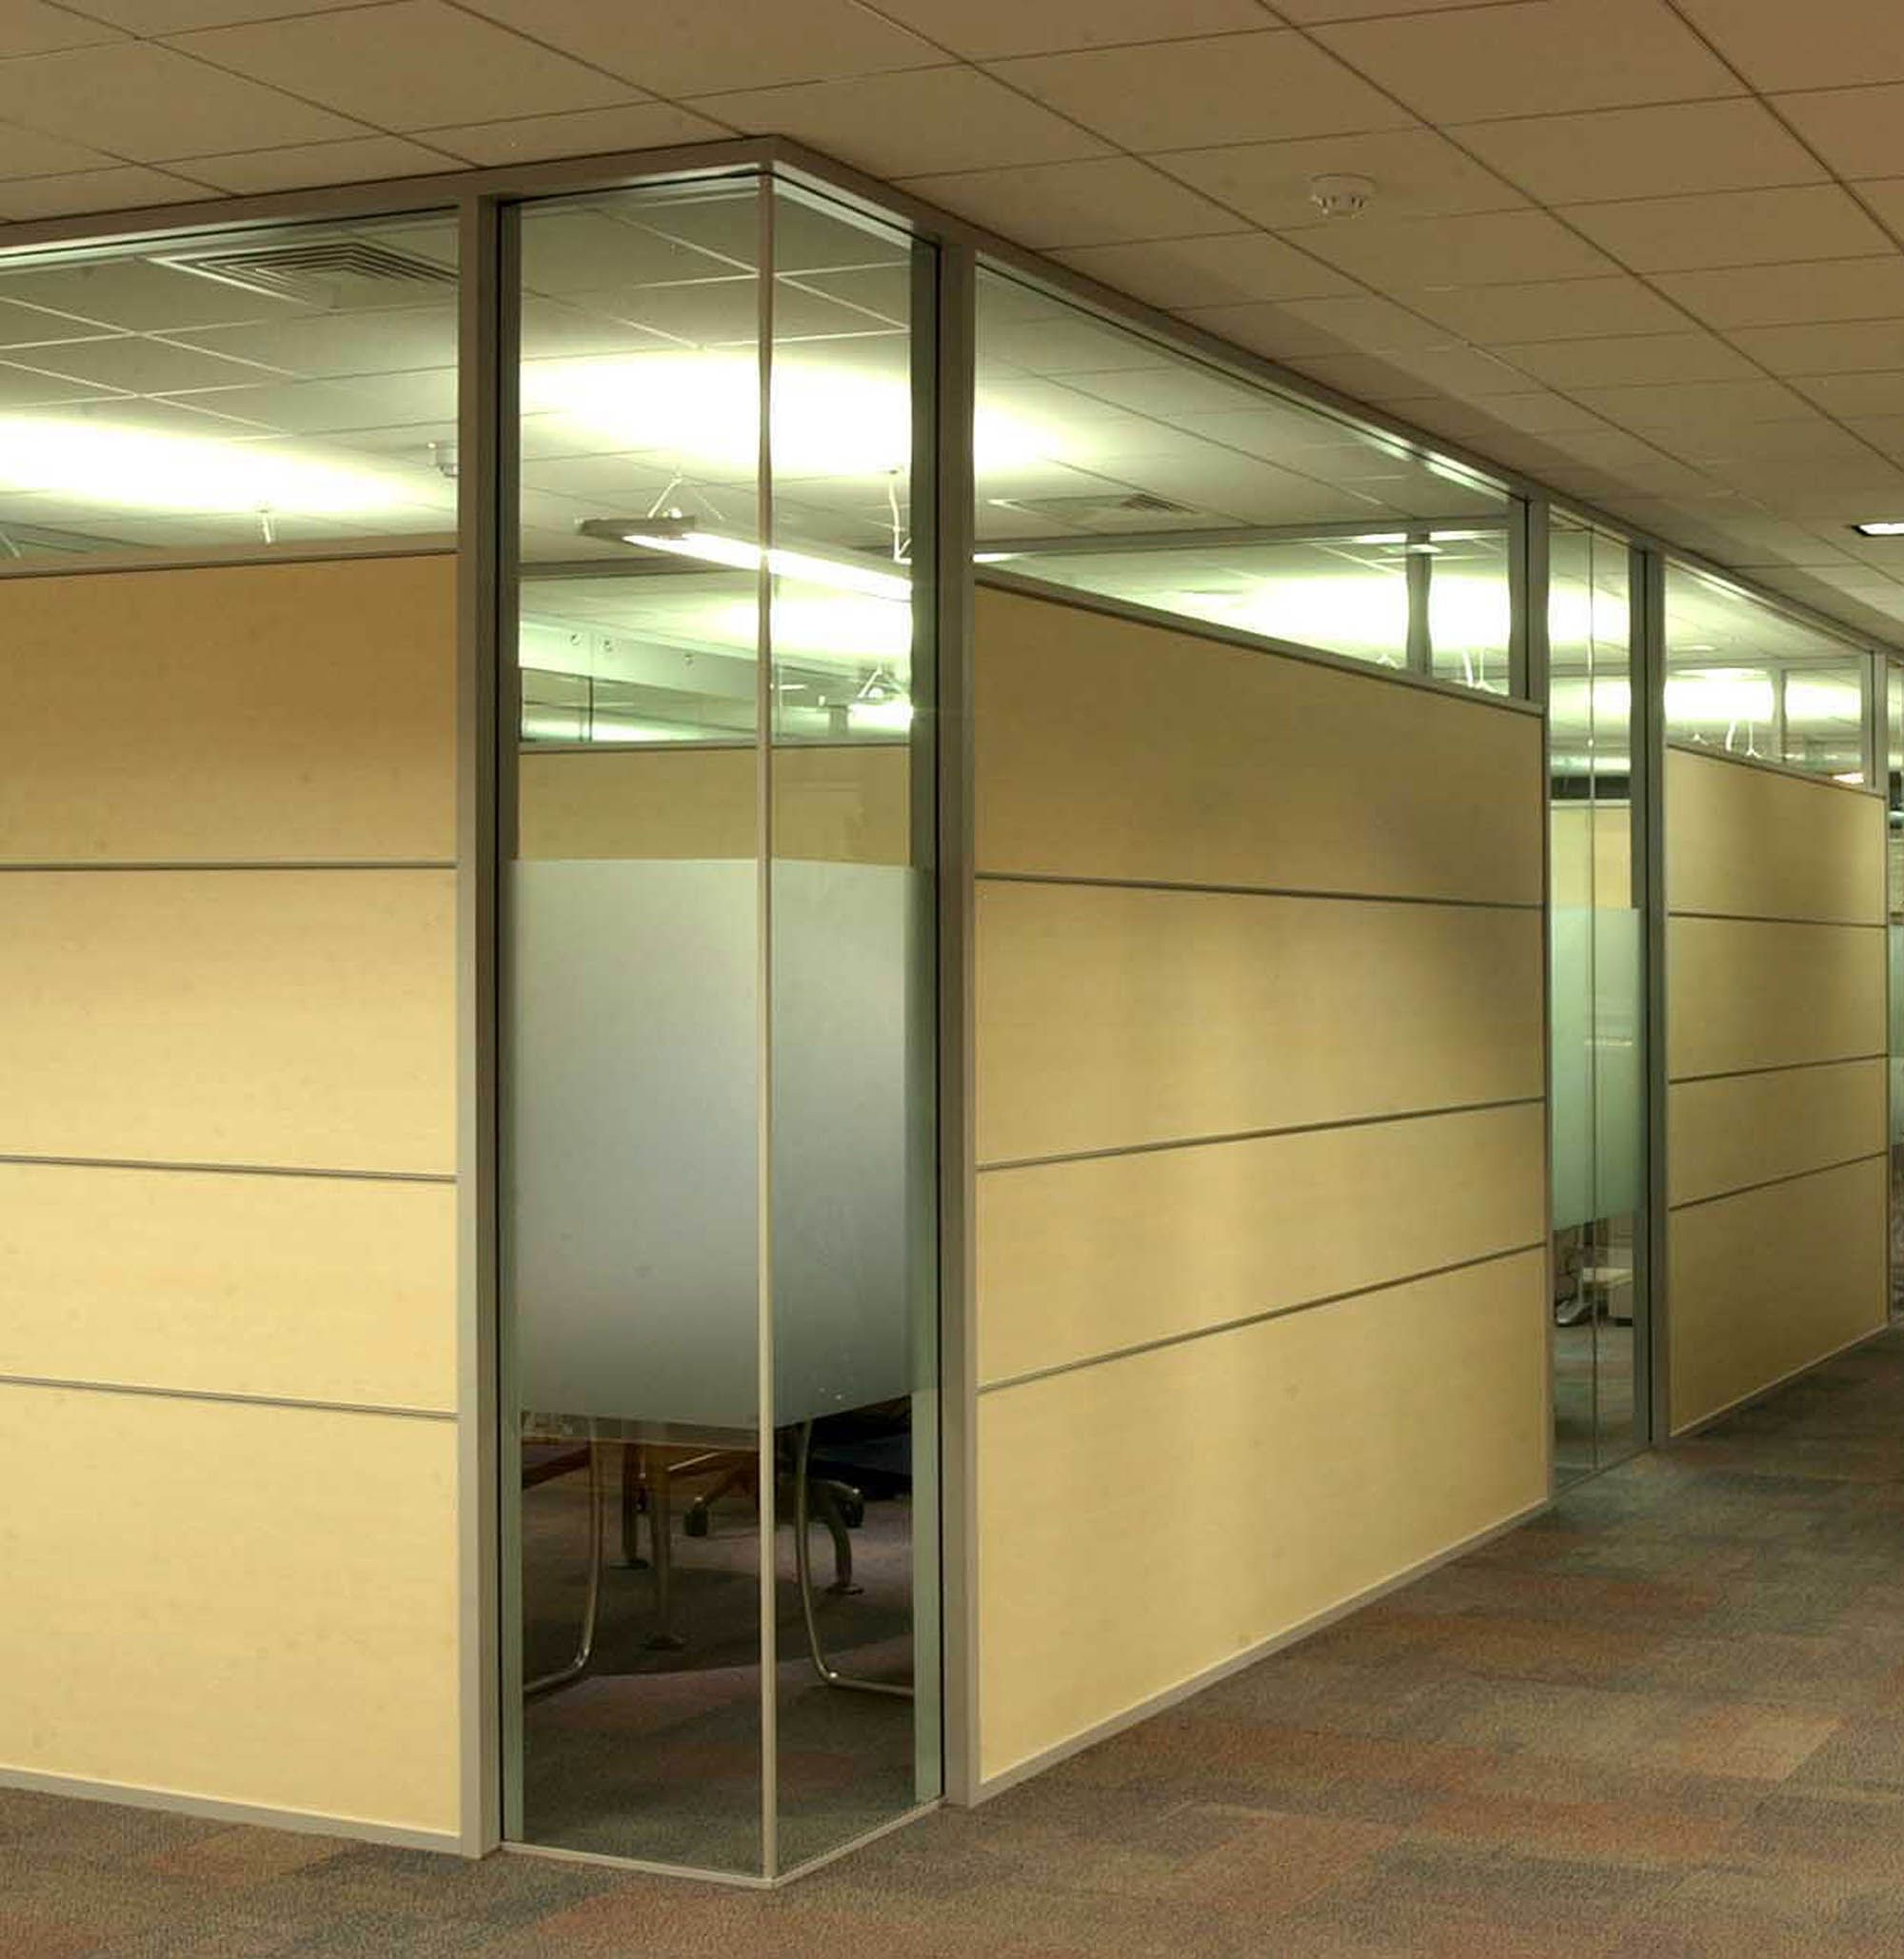 Glass partition walls as room 3 architectural simplicity for Glass walls